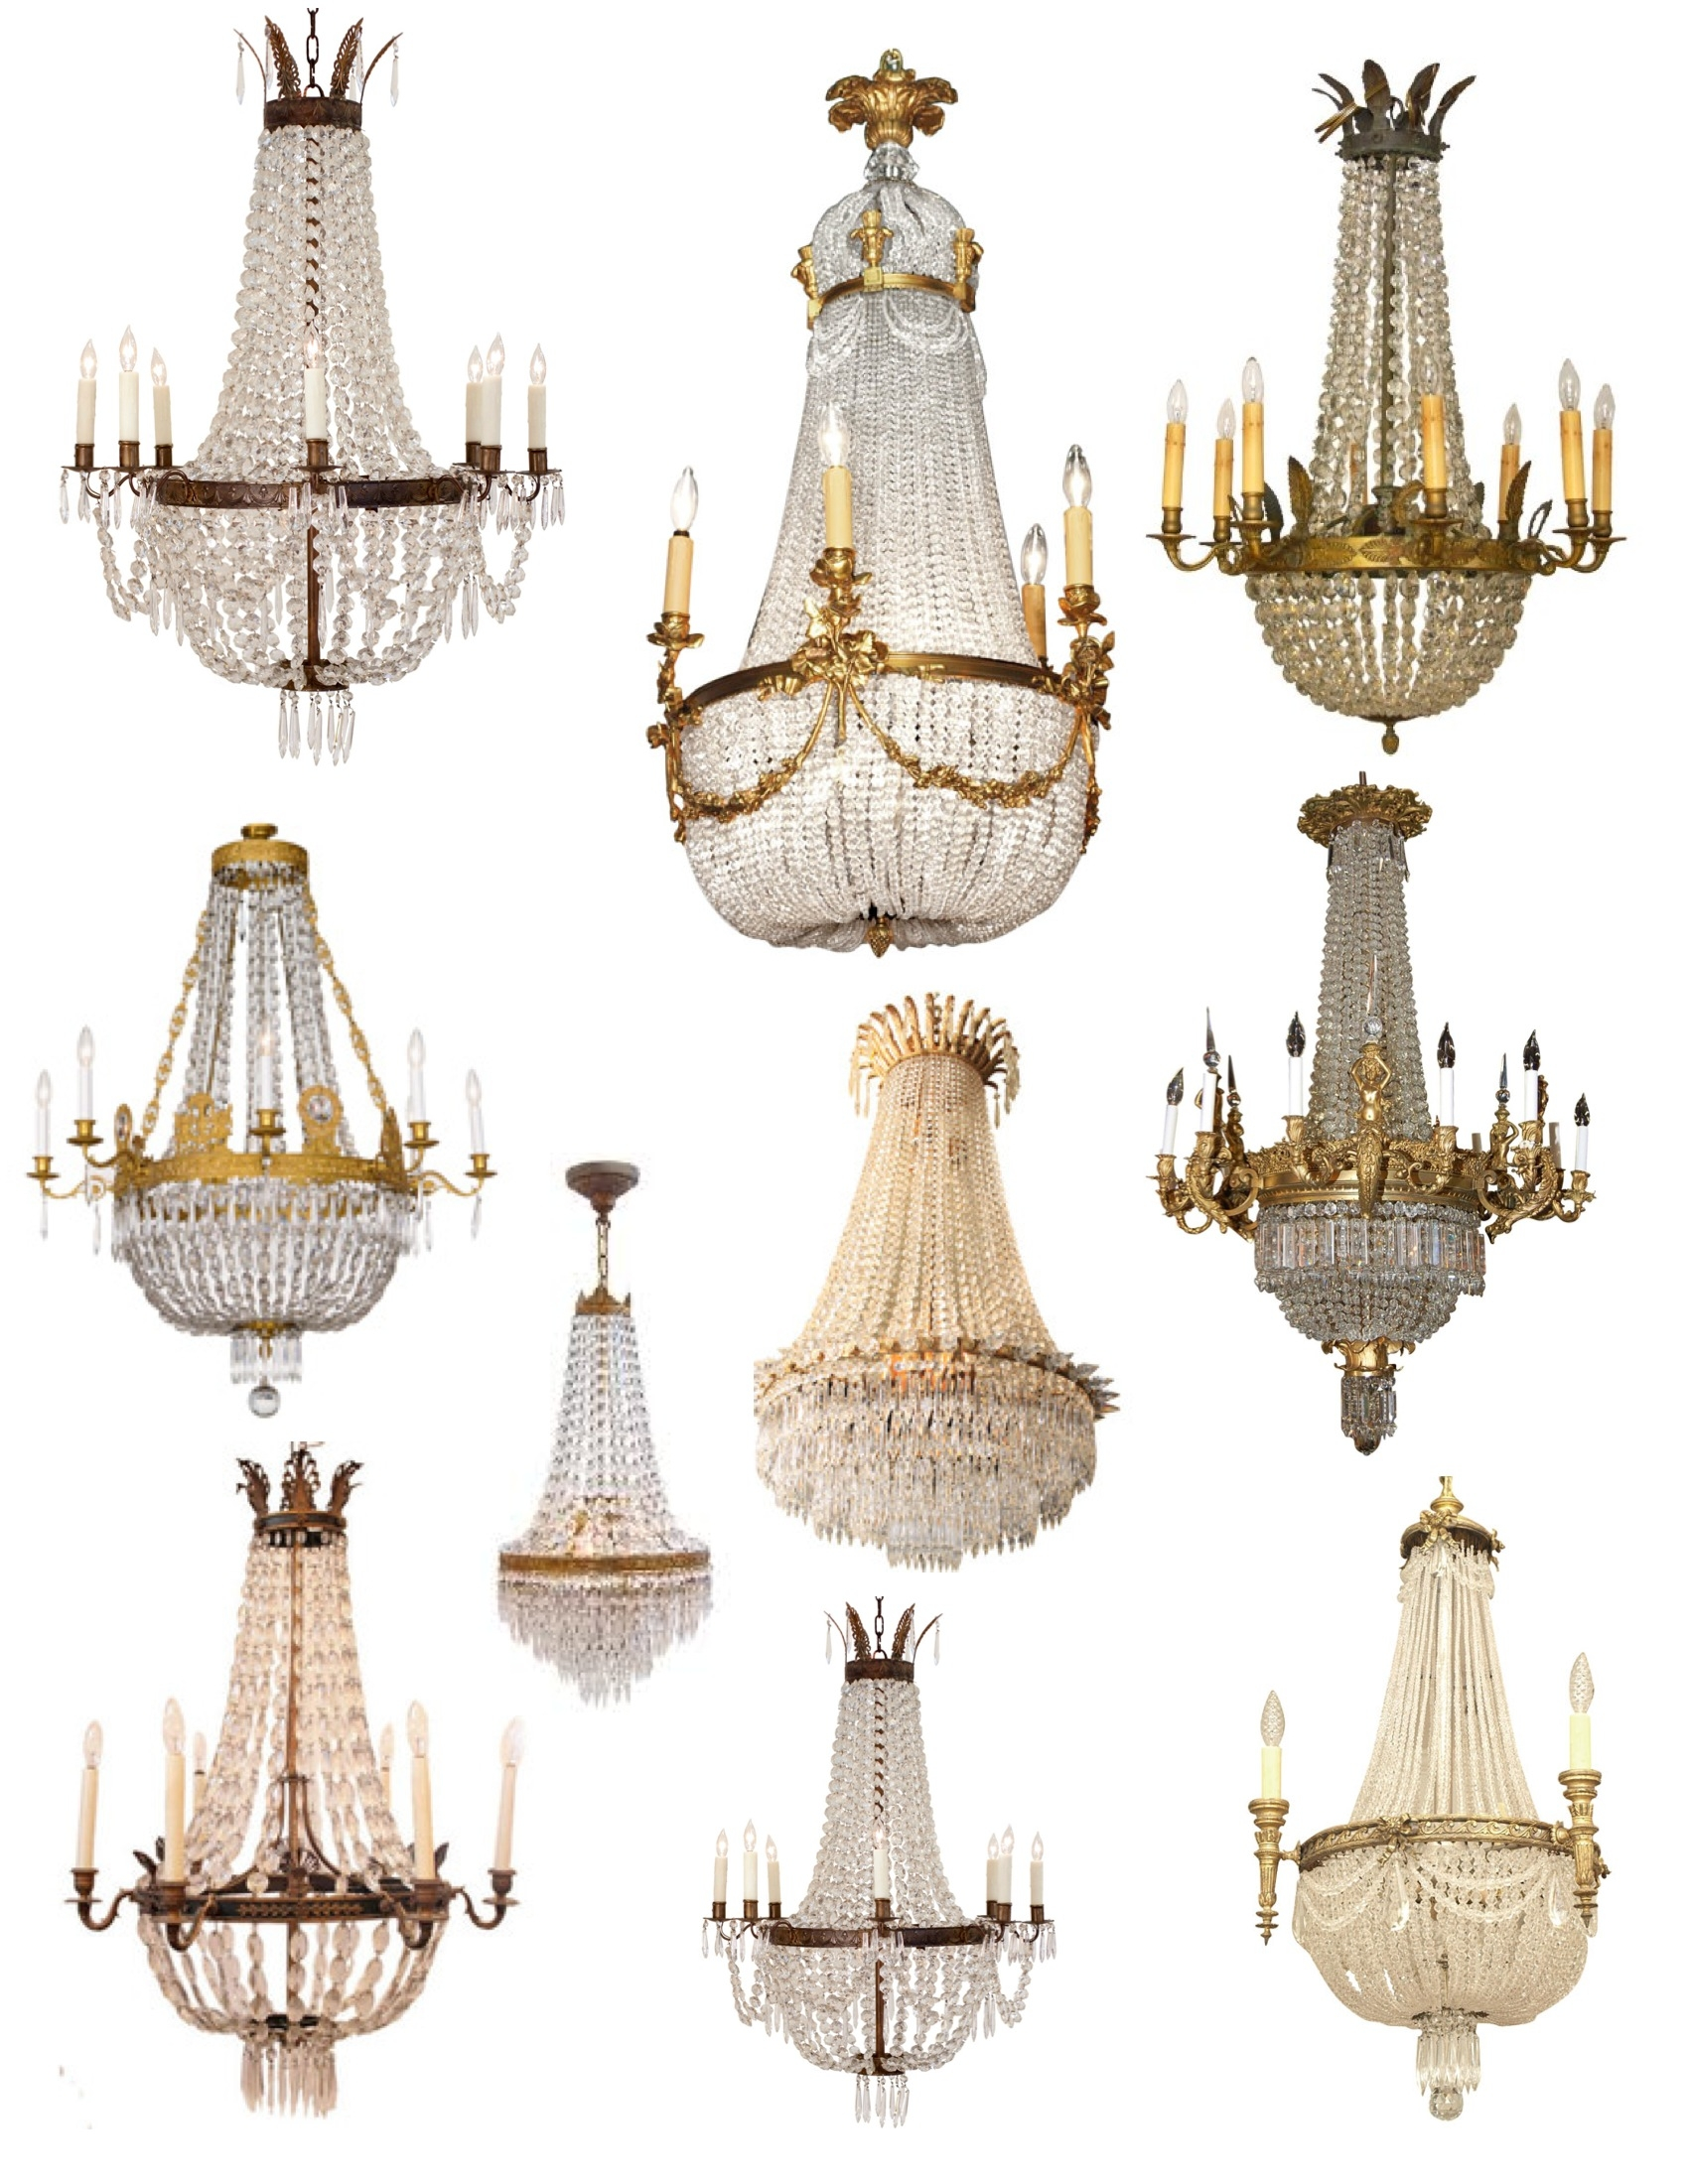 Crowned Magnificence The French Empire Crystal Chandelier Lamp Pertaining To Vintage Style Chandeliers (Image 5 of 15)